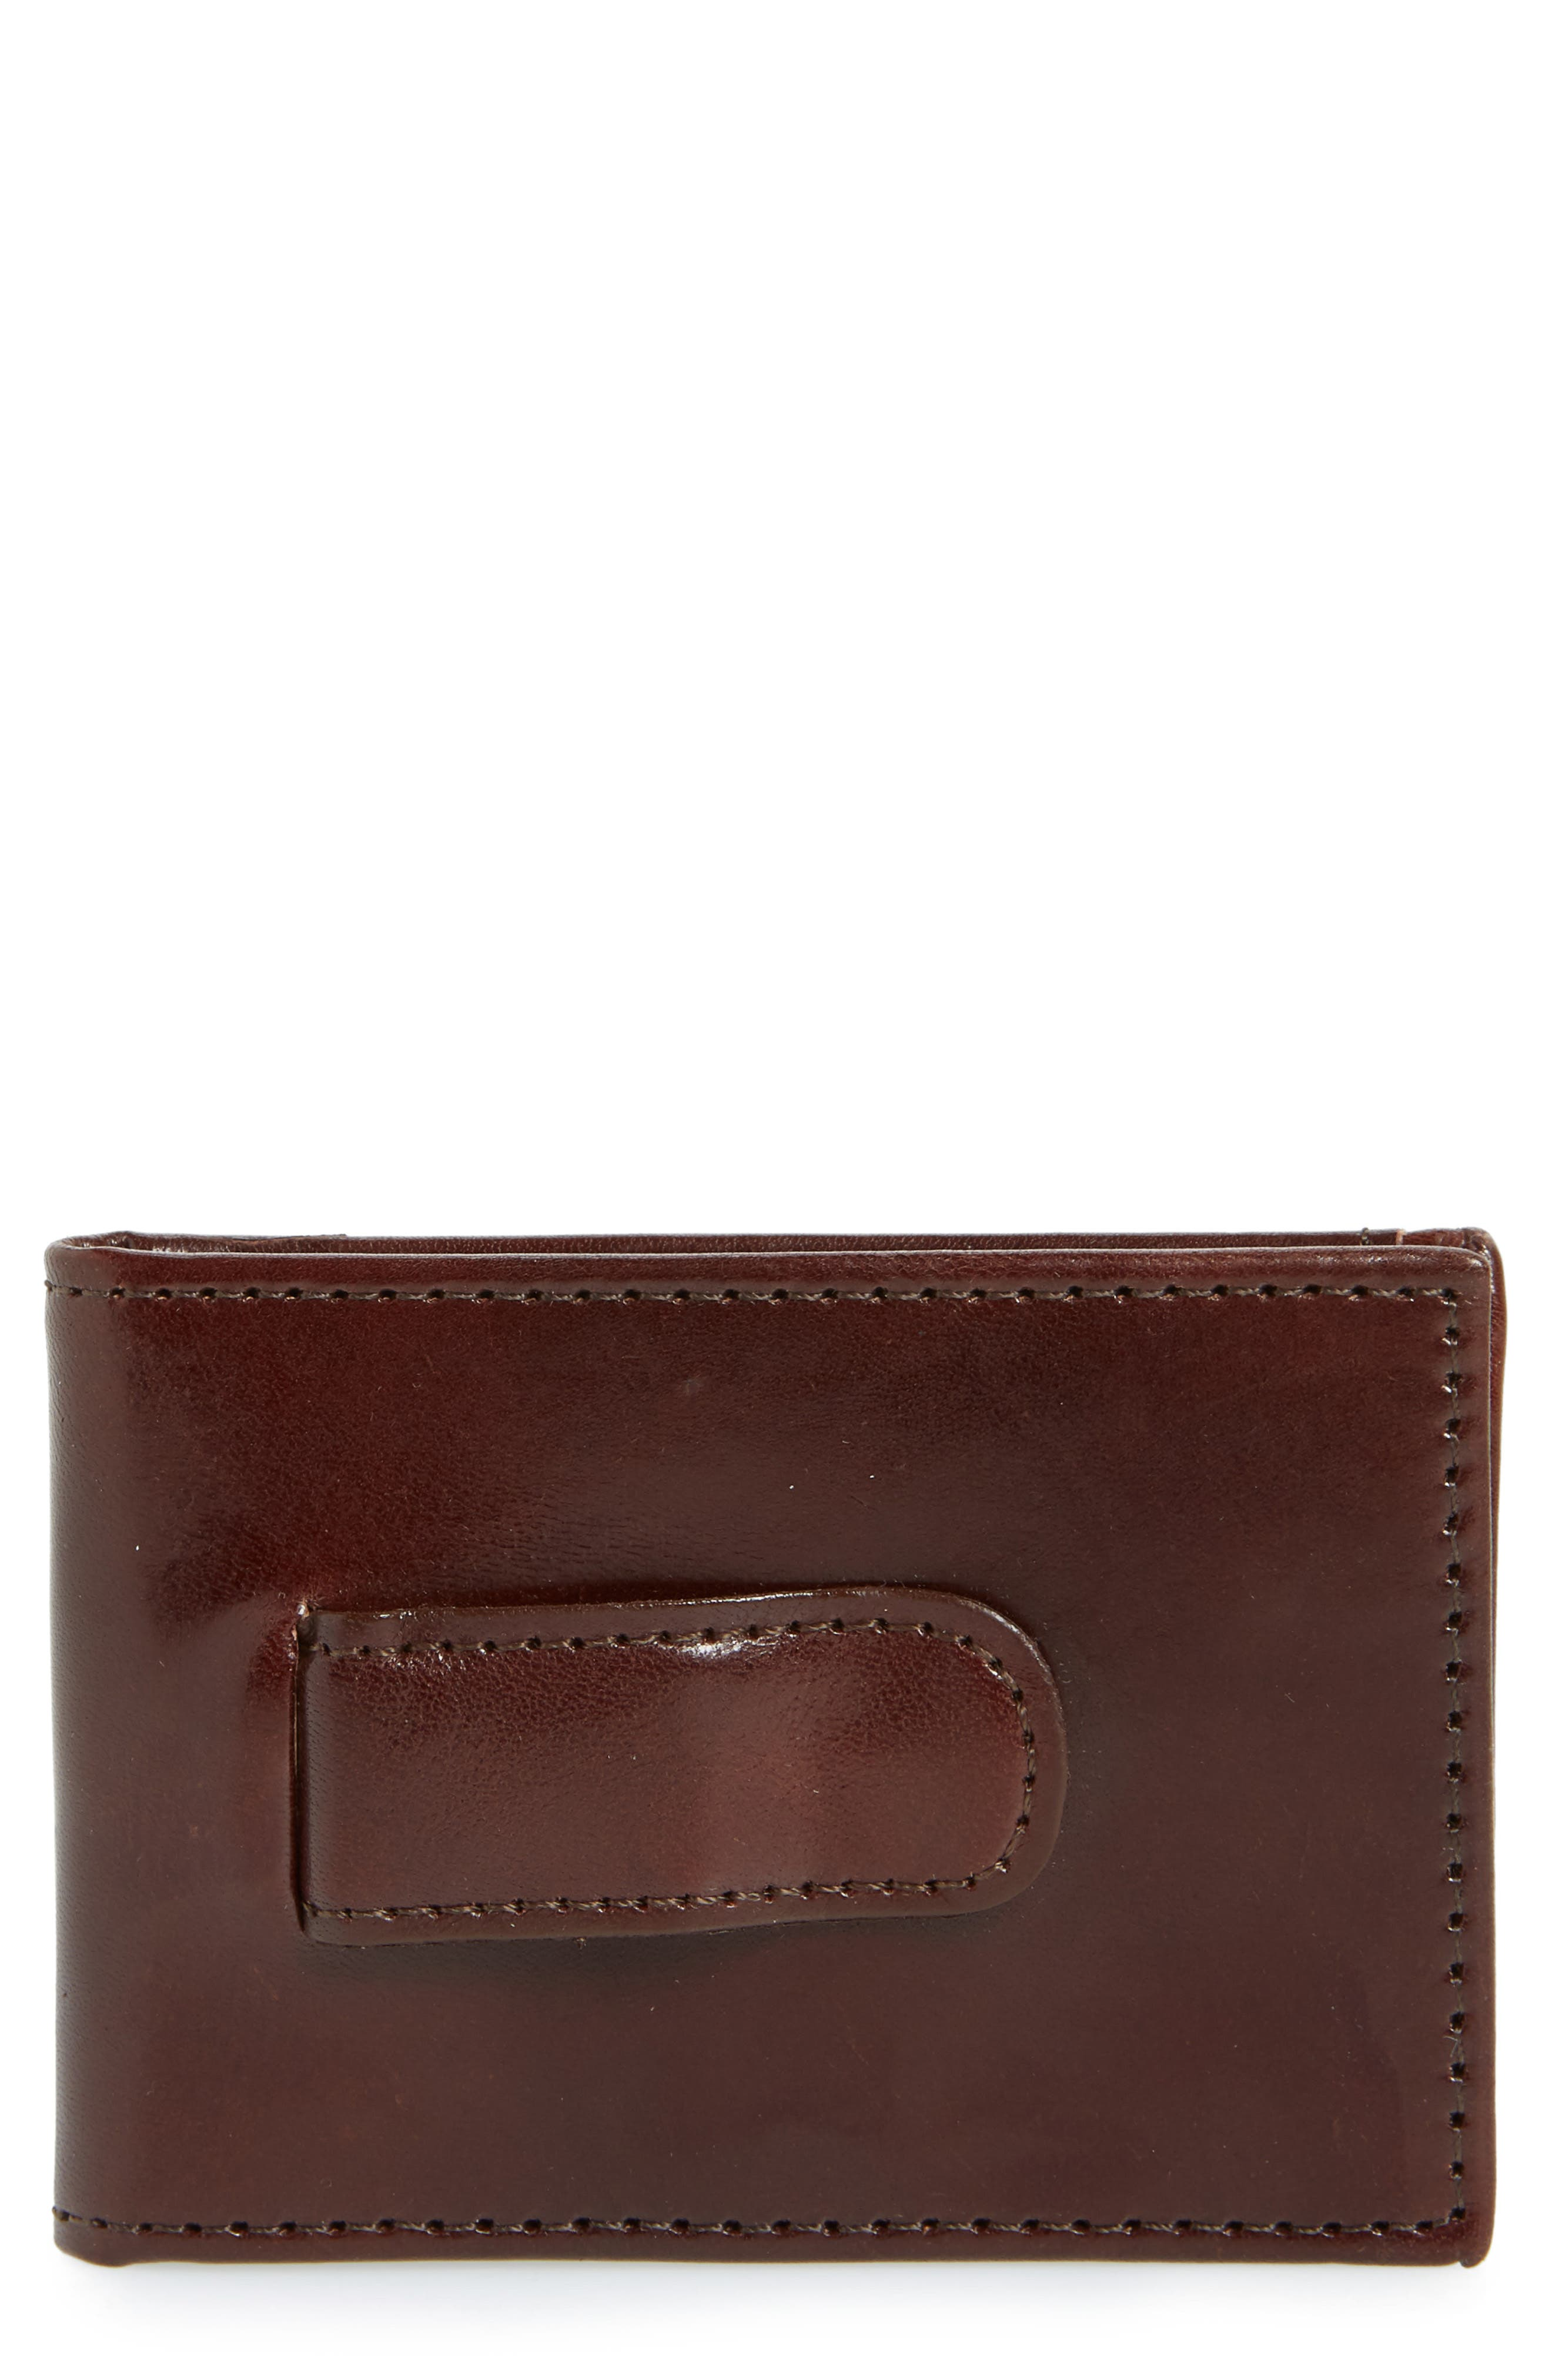 JOHNSTON & MURPHY Leather Money Clip Wallet, Main, color, BROWN